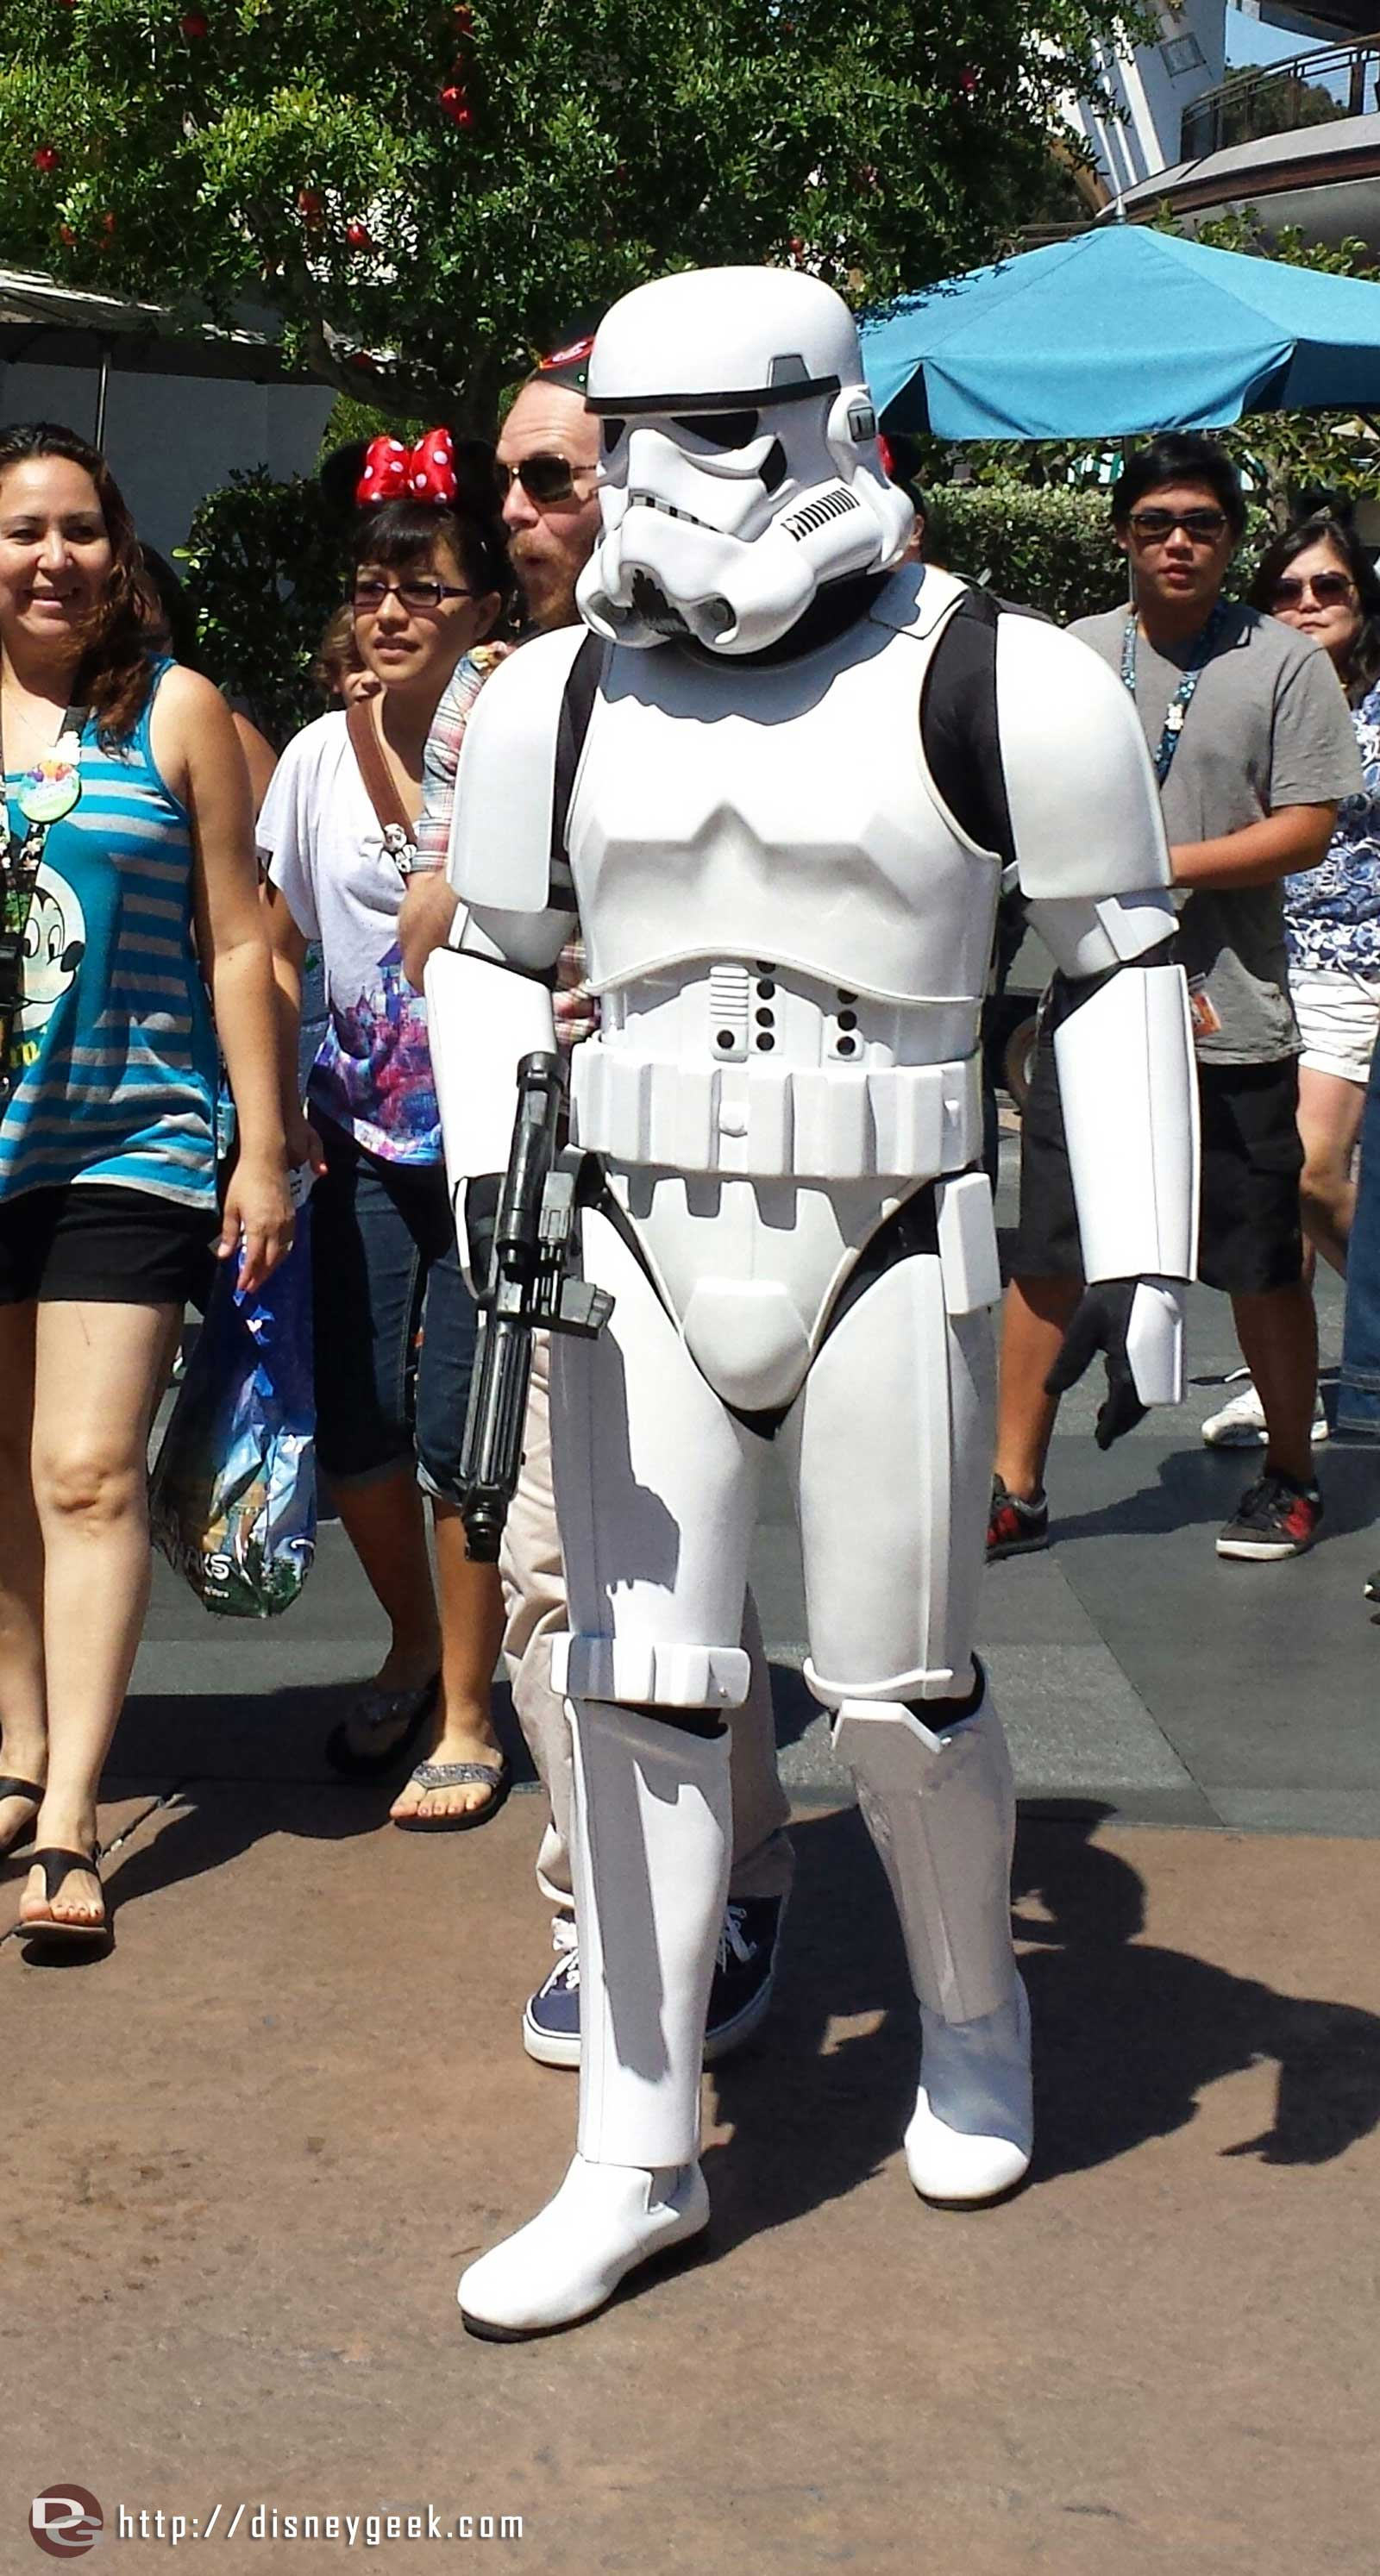 Spotted a couple of storm troopers patrolling Tomorrowland